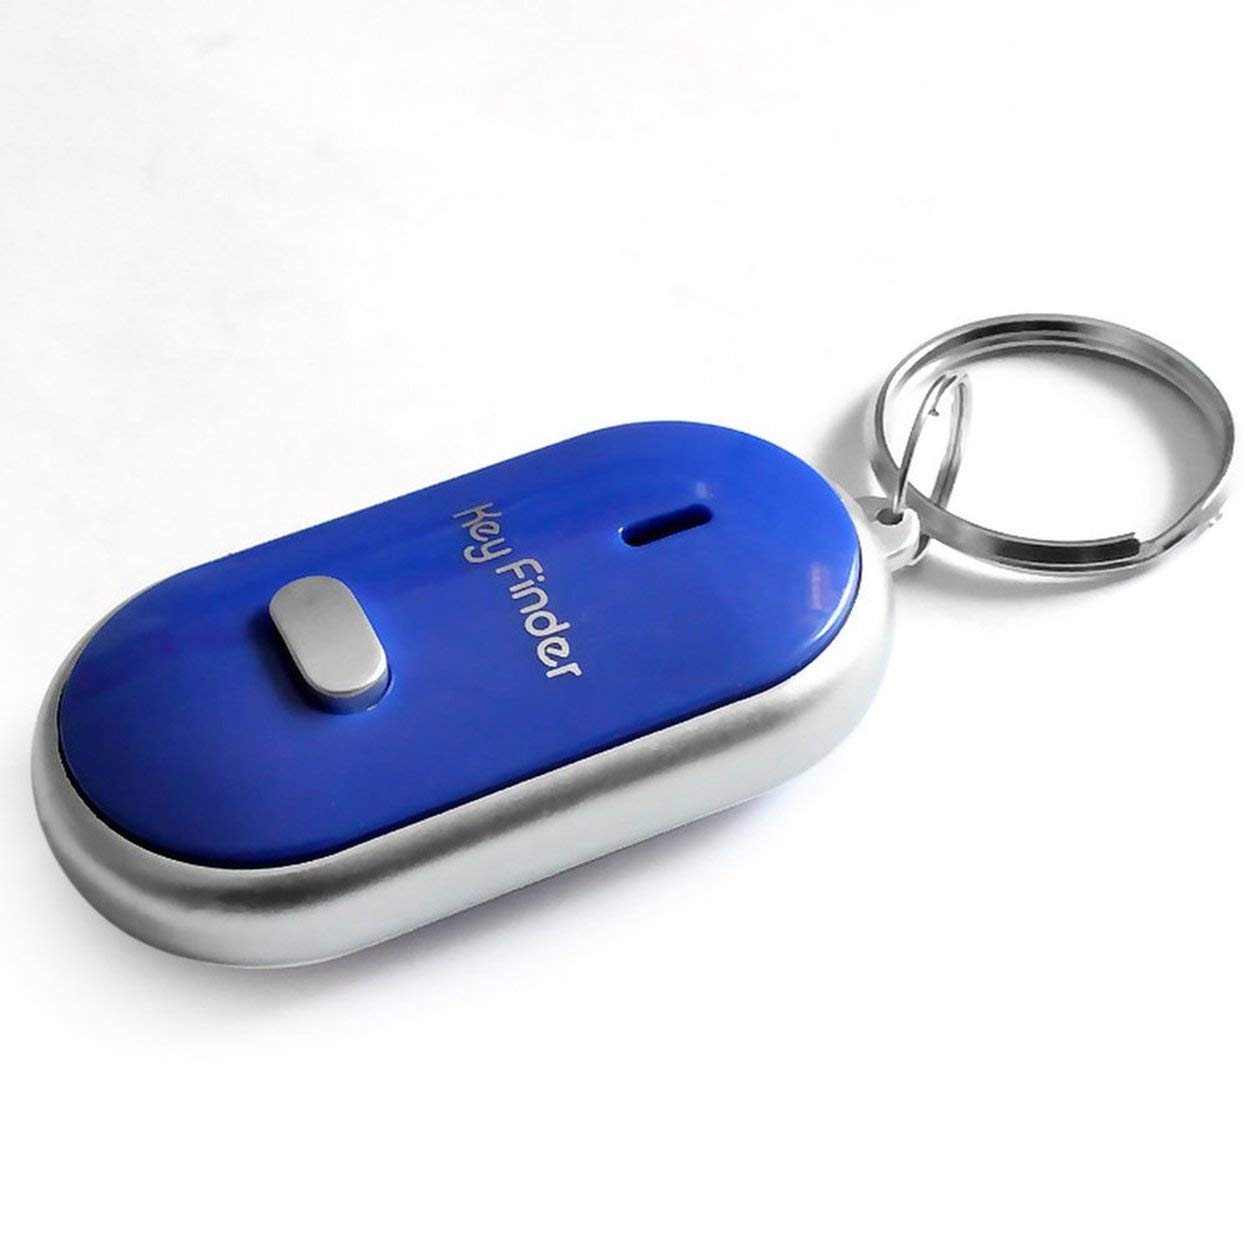 LED Whistle Key Finder Intermitente Sonido Pitido Control de Alarma Alarma Localizador de Keyfinder Anti-Perdido Rastreador con Llavero Color: Blanco